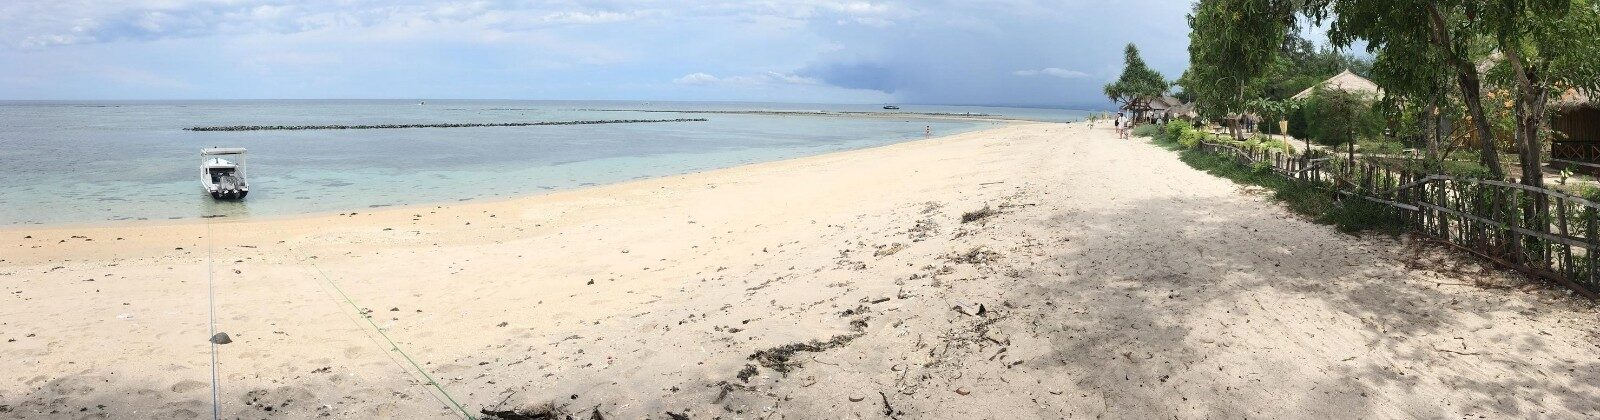 gili islands beach